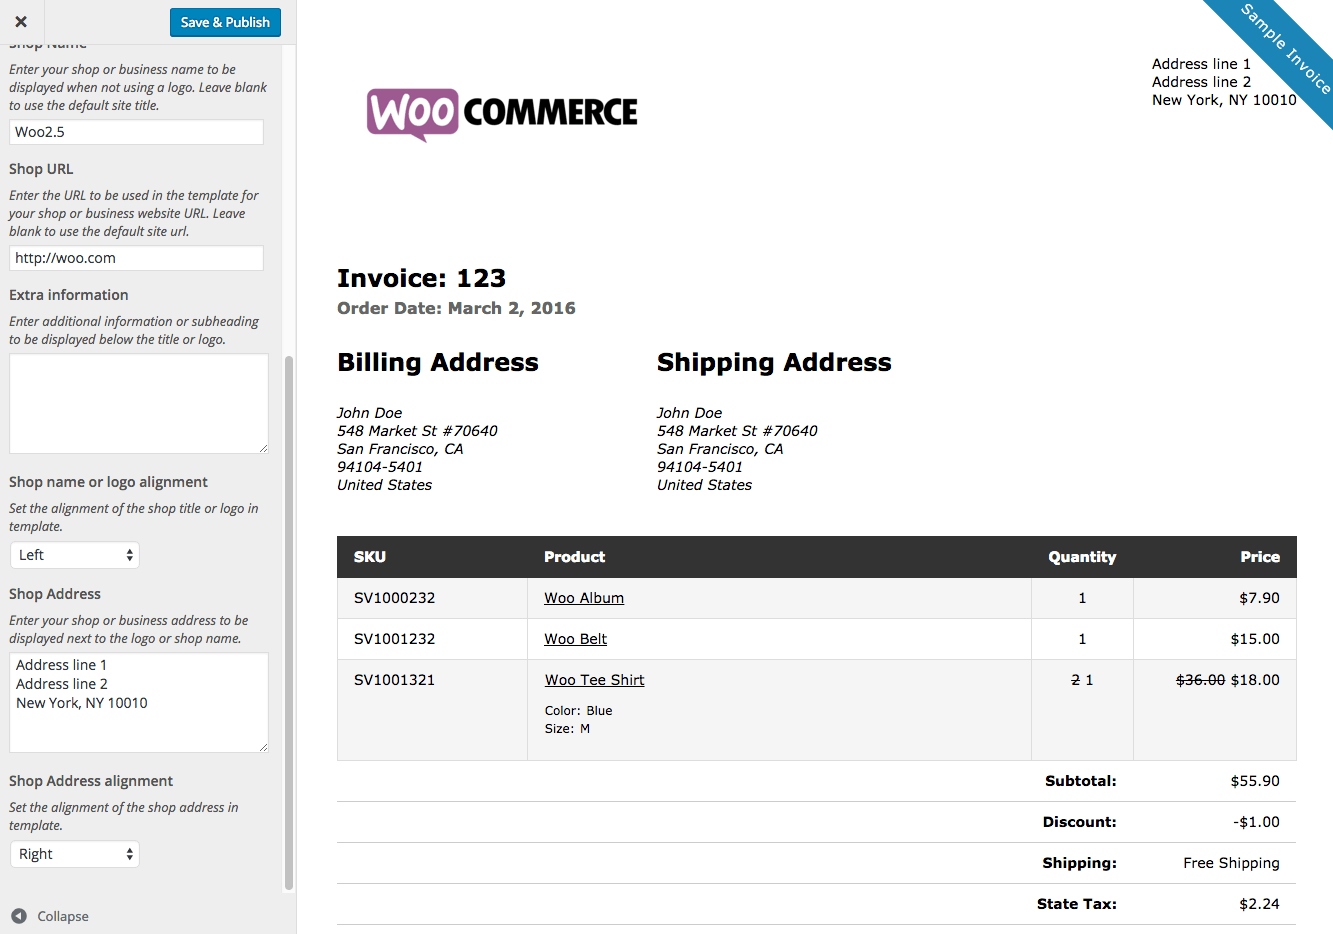 Ebitus  Remarkable Woocommerce Print Invoices Amp Packing Lists  Woocommerce Docs With Hot Woocommerce Print Invoices  Packing Lists Customizer With Charming Invoice Template In Excel  Also Sample Of Invoice For Payment In Addition Receipt Invoice Template Free And Invoice Software Online As Well As Commerial Invoice Additionally Free Invoice Application From Docswoocommercecom With Ebitus  Hot Woocommerce Print Invoices Amp Packing Lists  Woocommerce Docs With Charming Woocommerce Print Invoices  Packing Lists Customizer And Remarkable Invoice Template In Excel  Also Sample Of Invoice For Payment In Addition Receipt Invoice Template Free From Docswoocommercecom